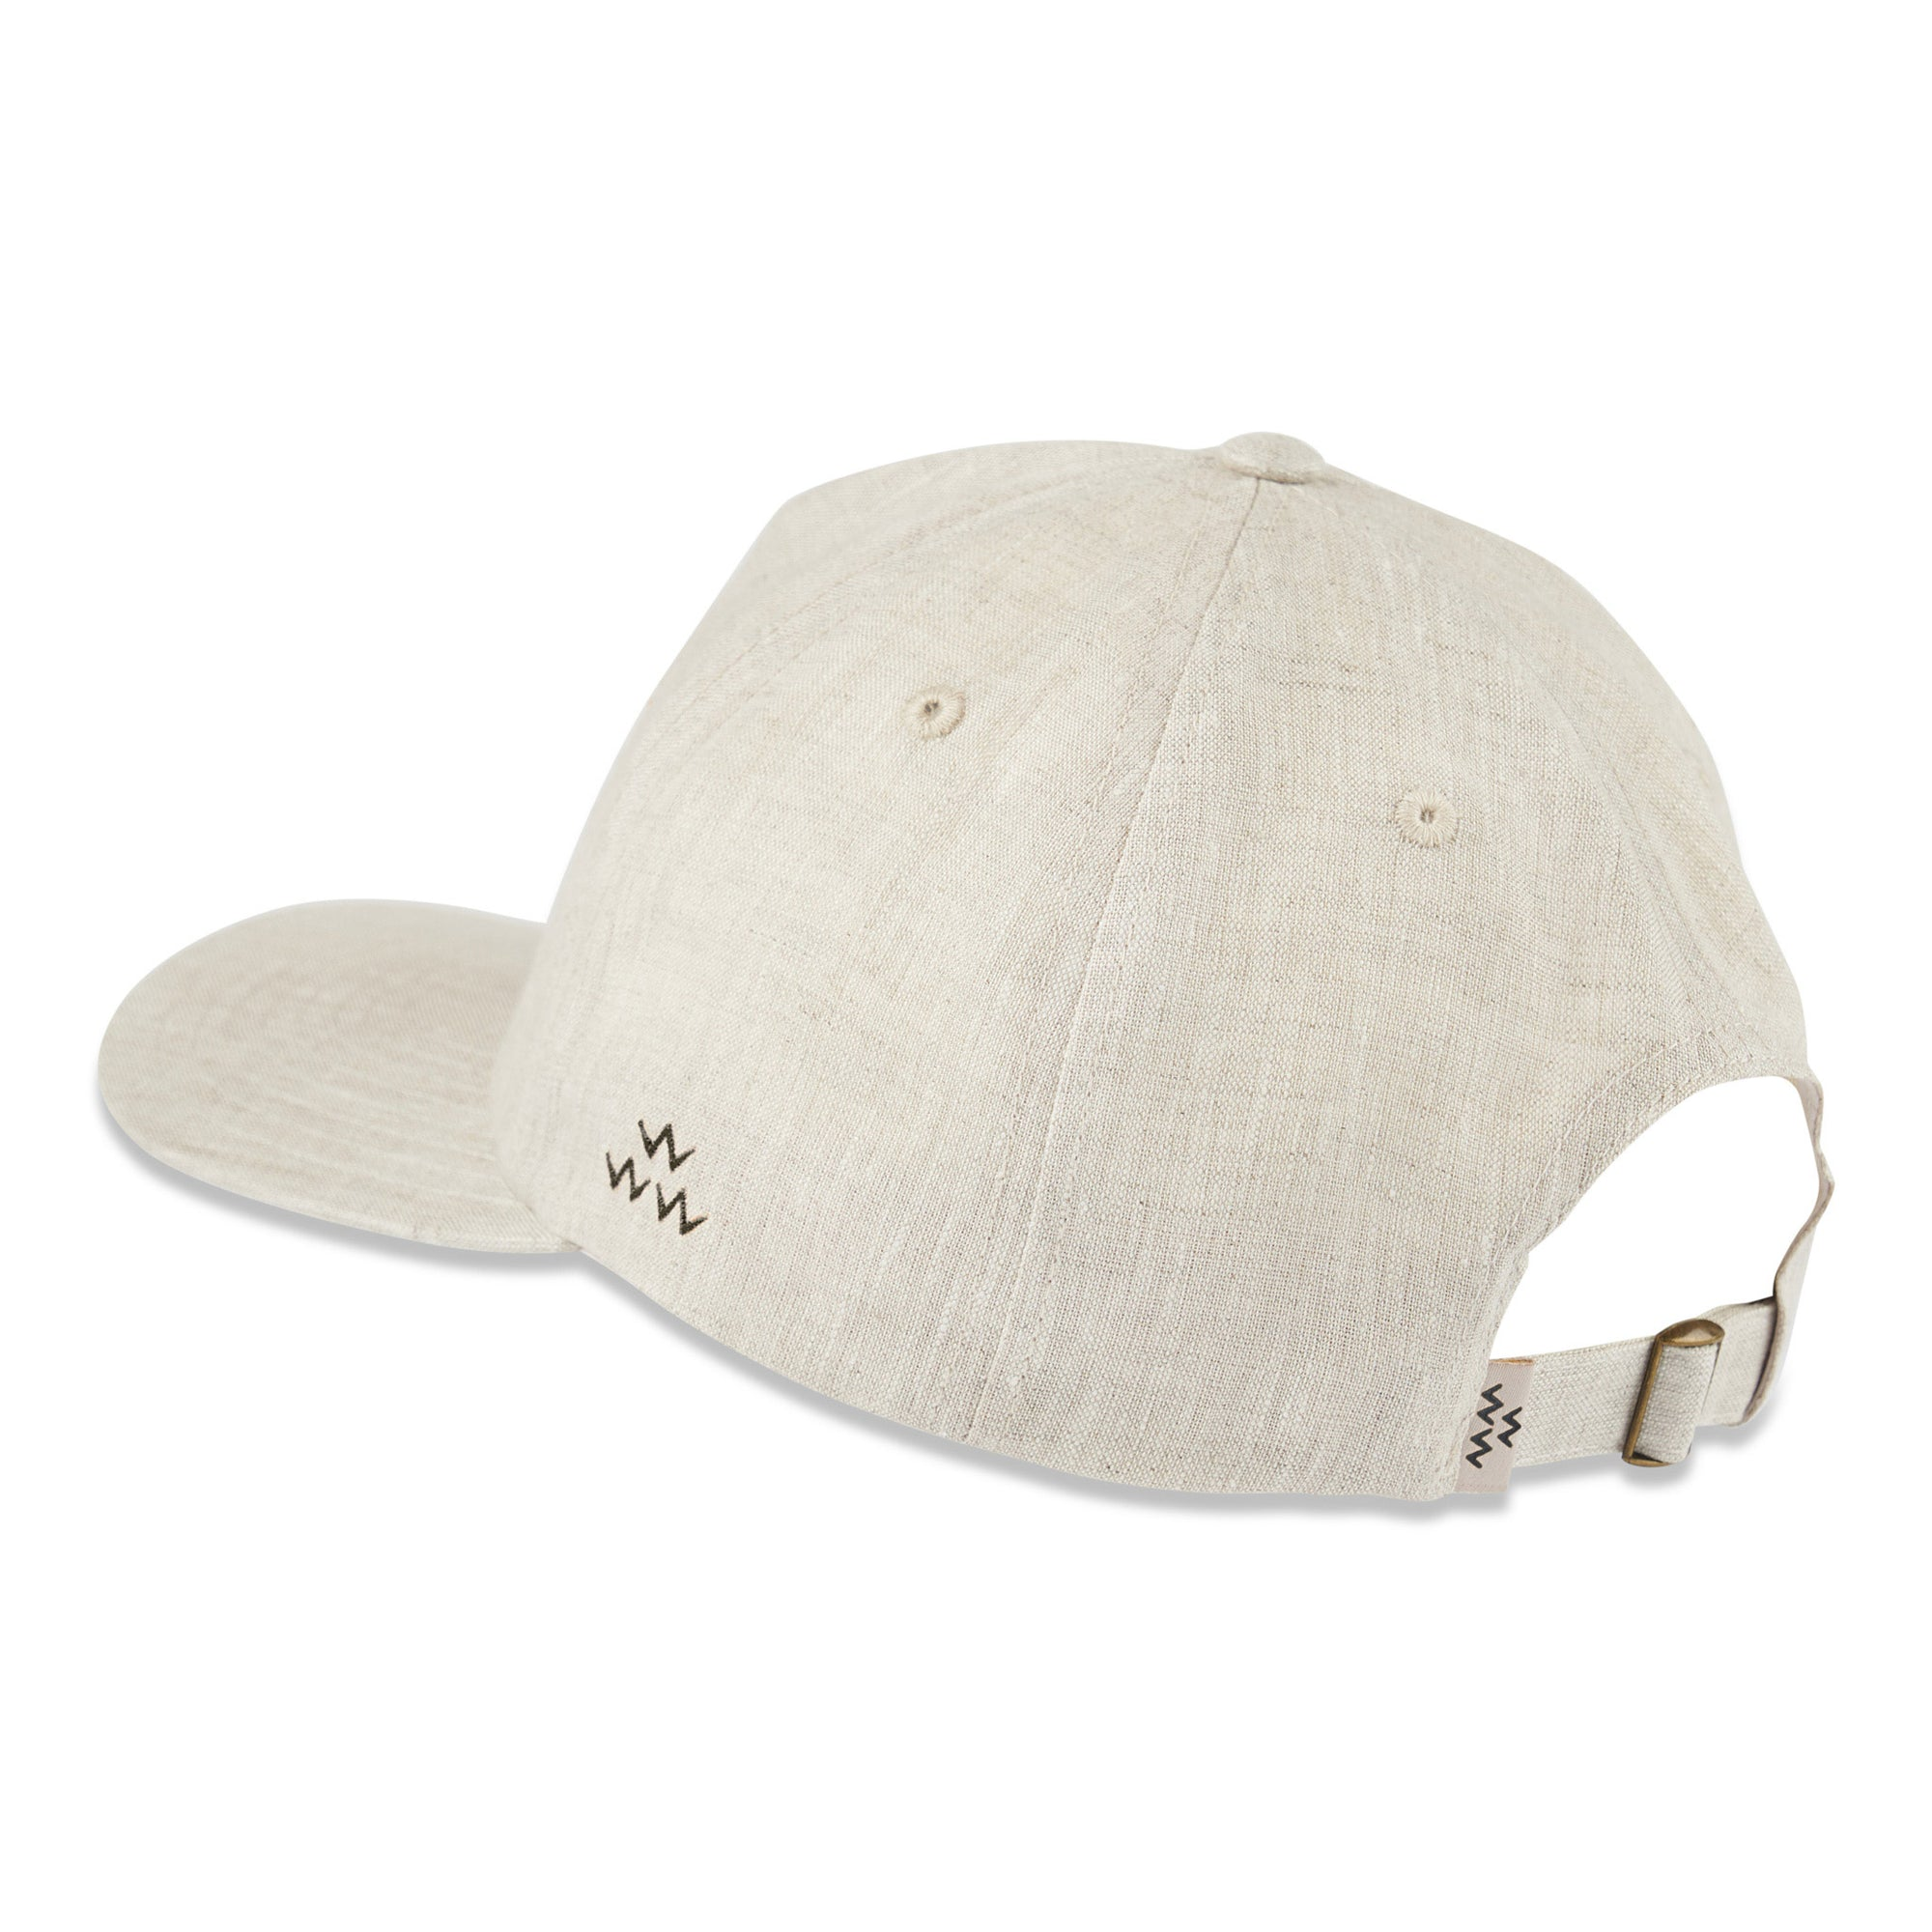 birds-of-condor-natural-hemp-golf-northern-california-sinsemilla-hat-cap-front